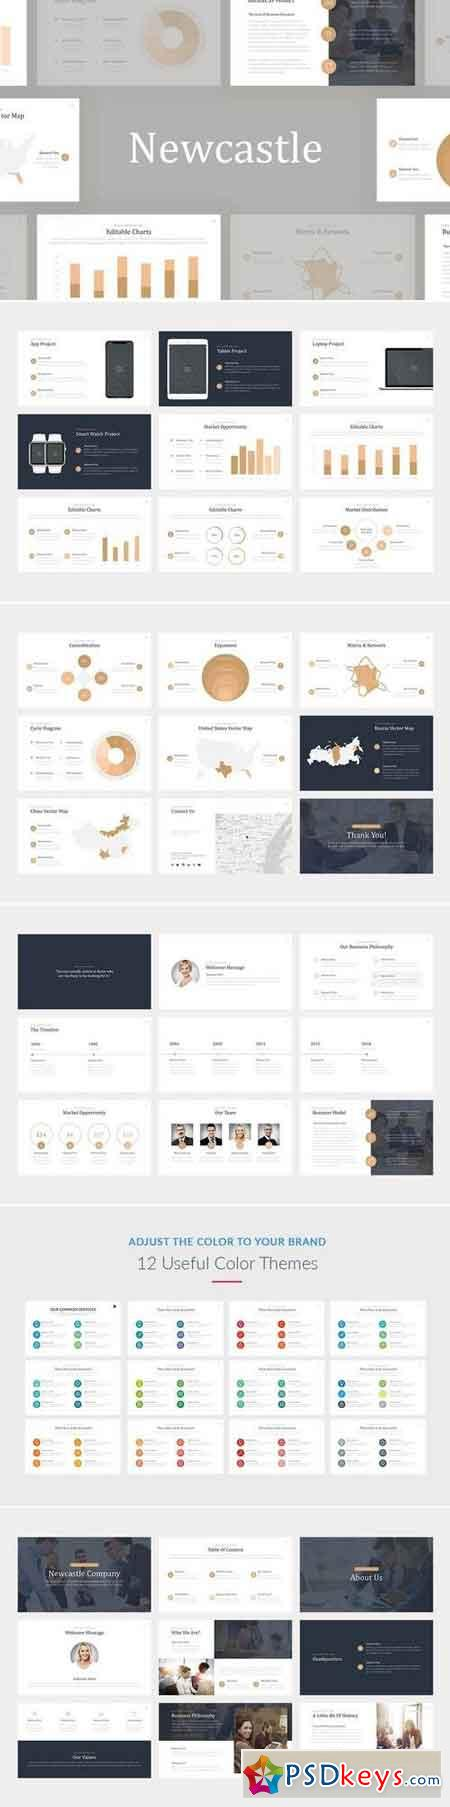 Newcastle Professional Powerpoint, Keynote, Google Sliders Templates